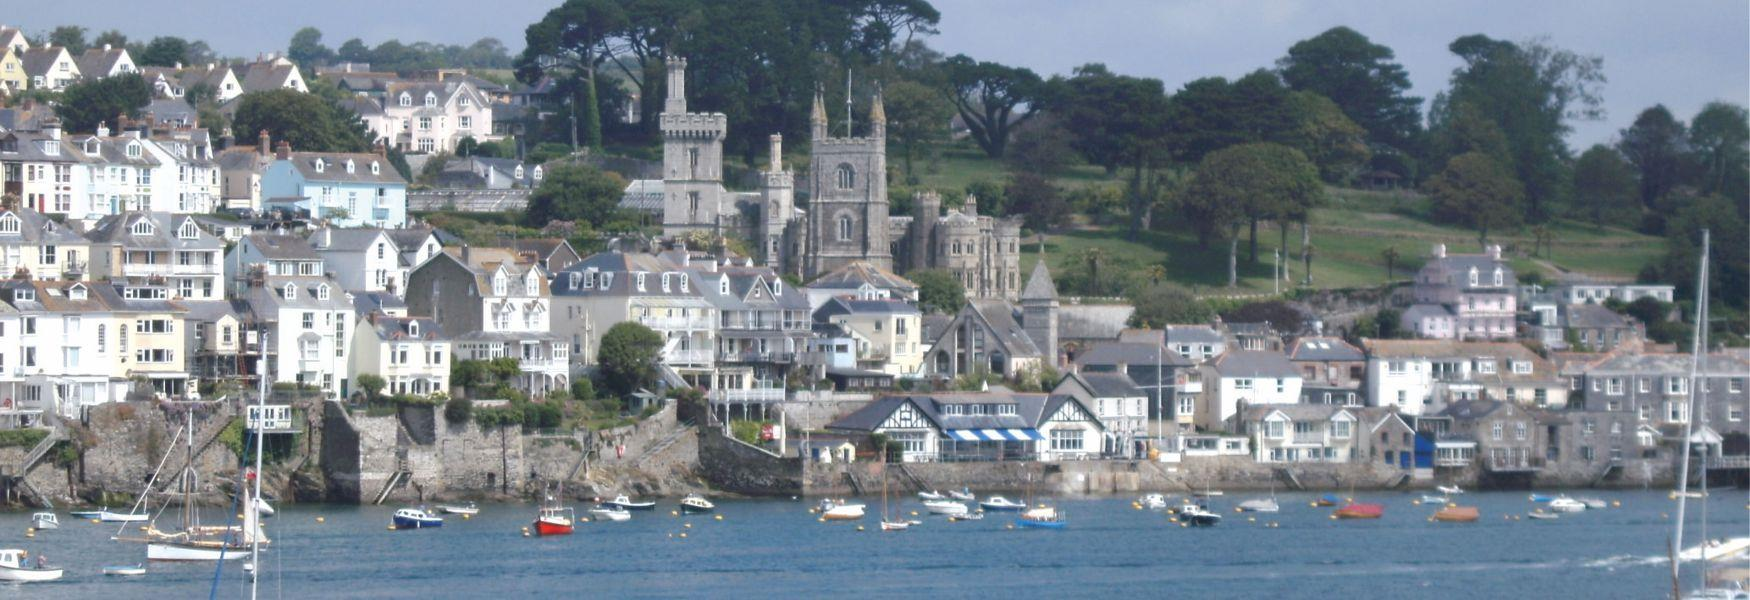 A view of Fowey from the river